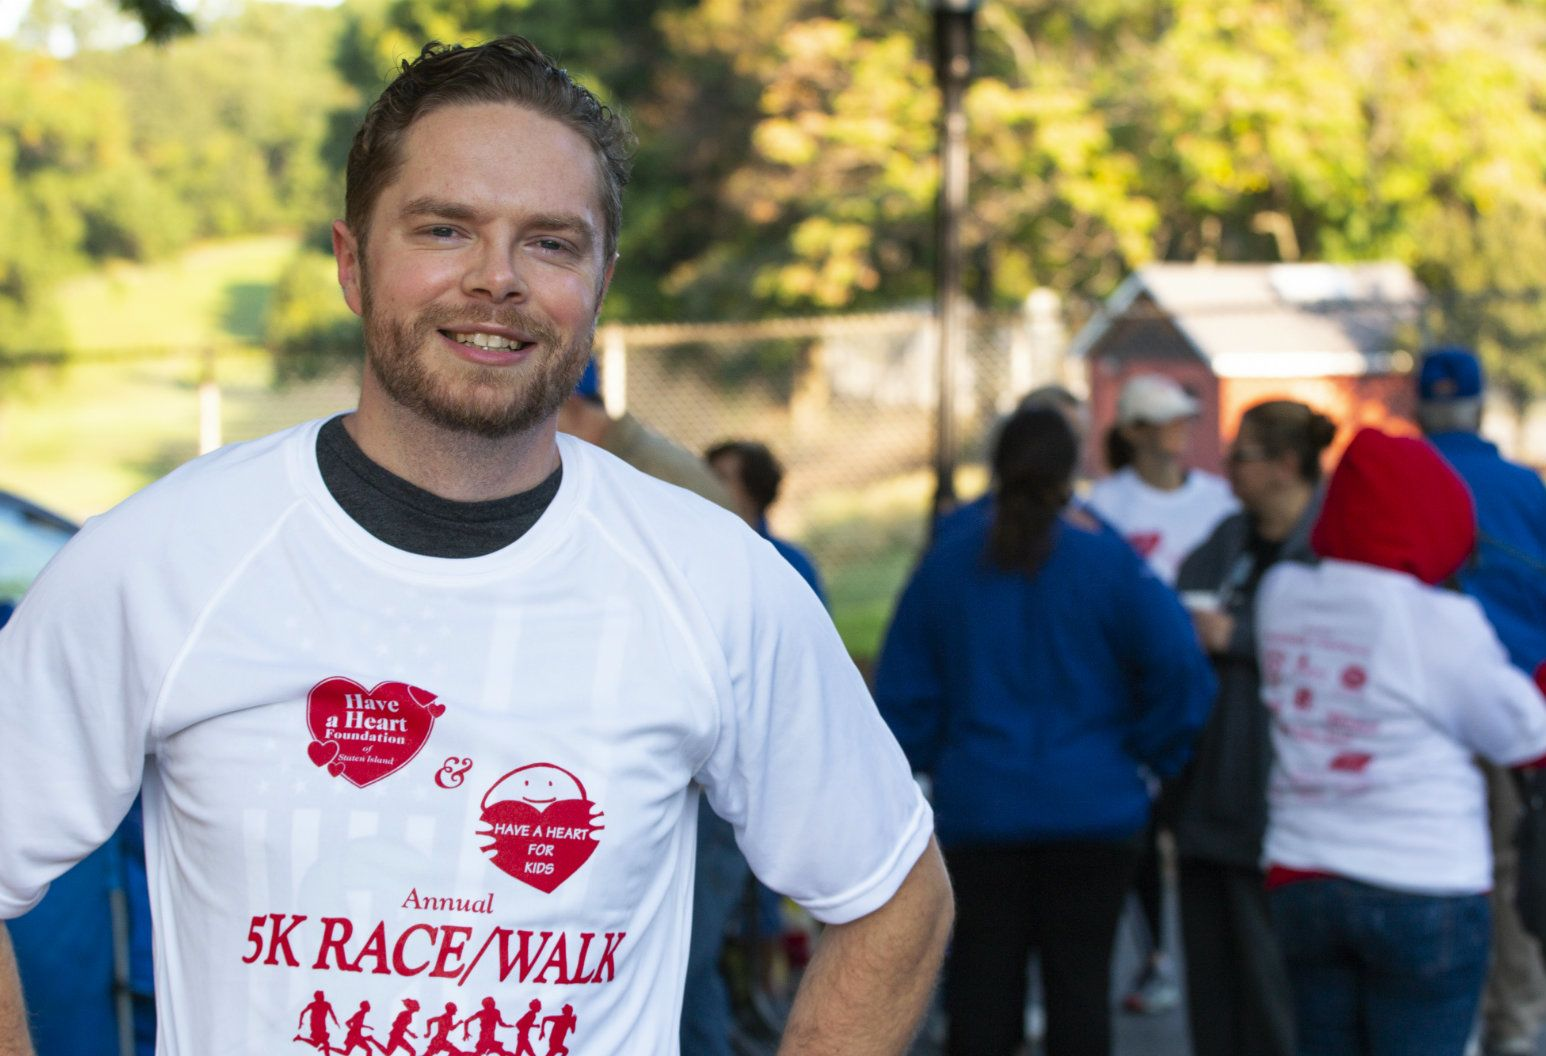 Michael Modica stands posing triumphantly after finishing a 5k race promoting heart health. The recipient of a heart transplant after an unexpected health issue, Modica has a new appreciation for his health and organ donors.